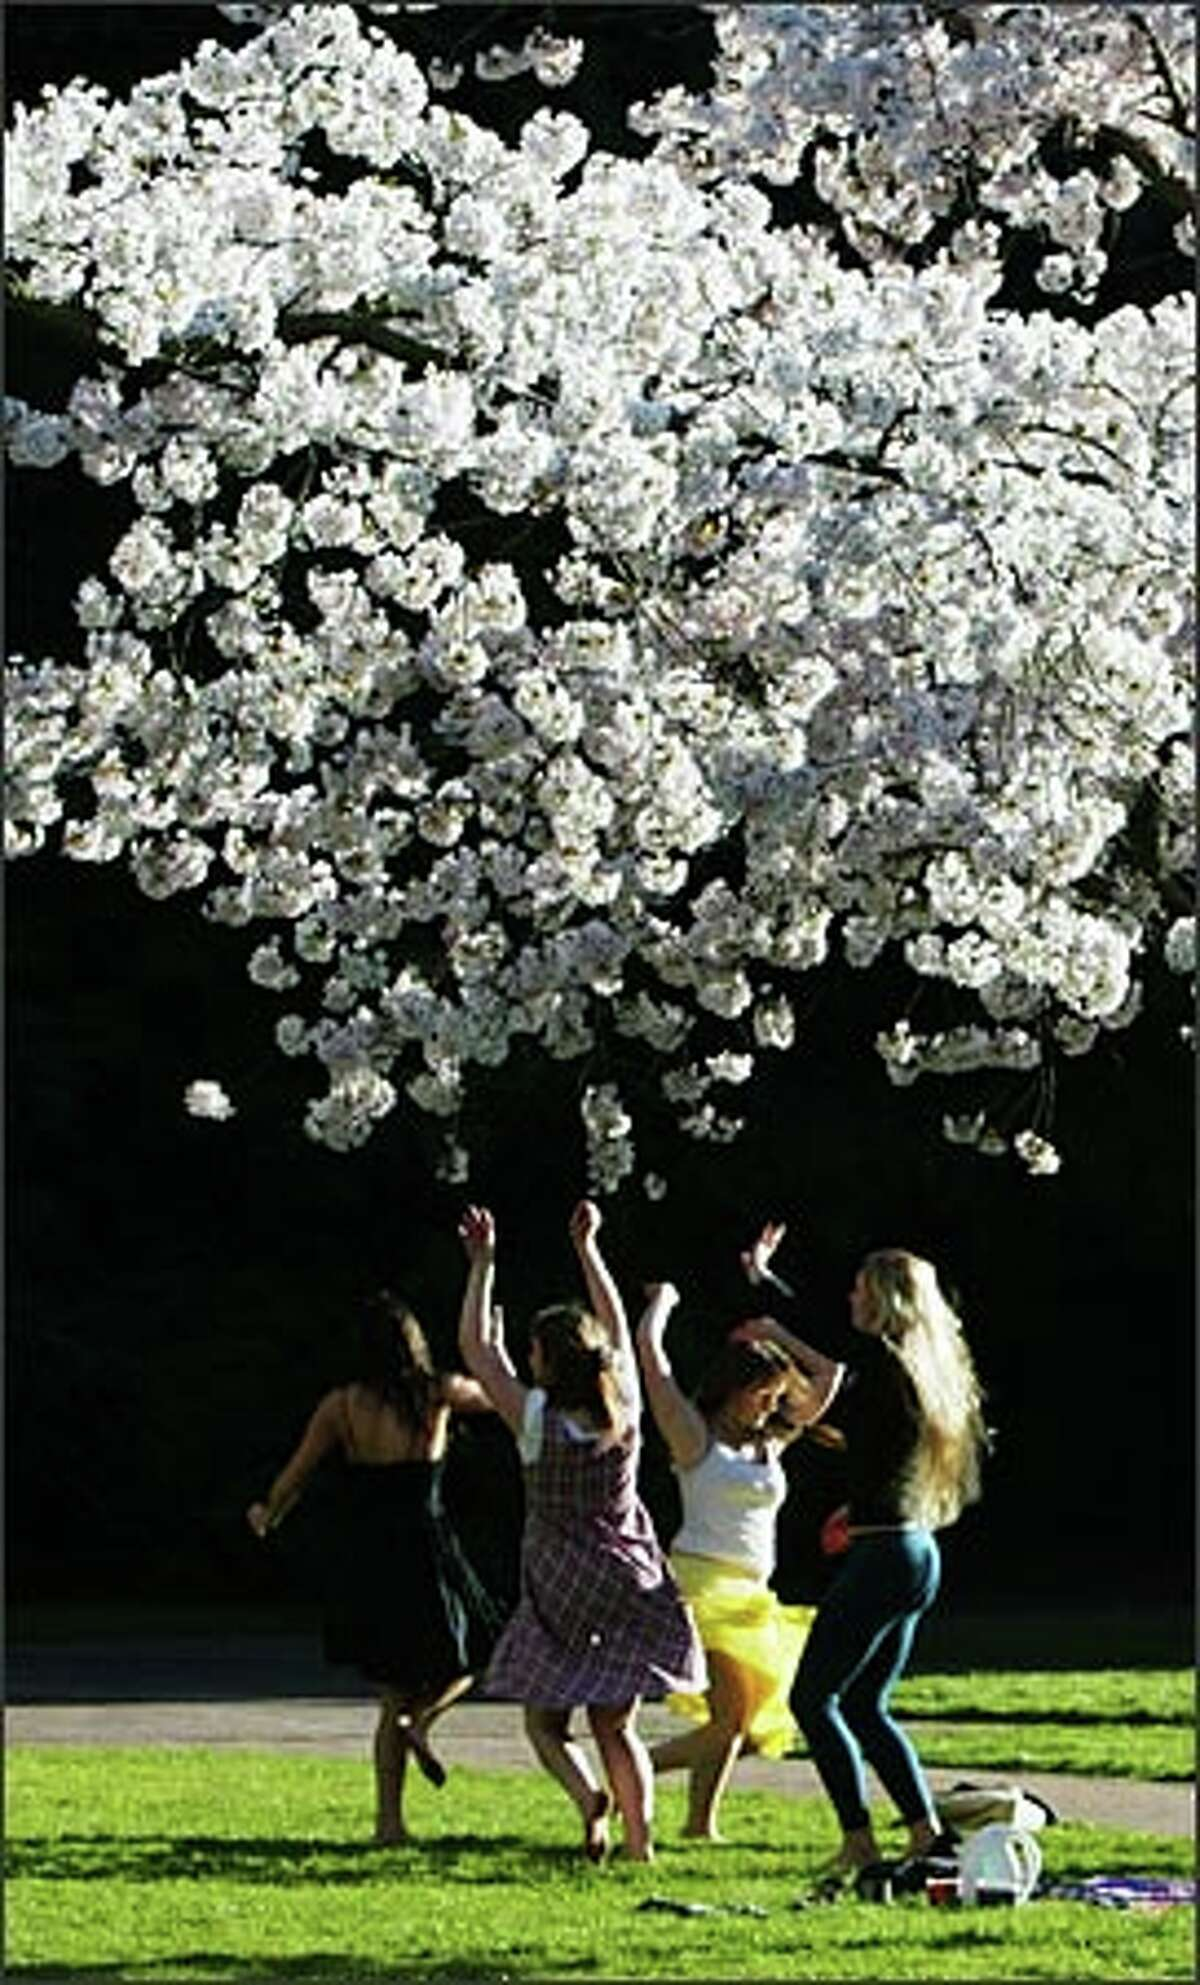 Cherry tree blossoms and sunshine greet students on their first day back on campus after the University of Washington's spring break. Dancing under the cherry tree blossoms are, from left: Saki Jane Marsh, 20, a sophomore at Portland State University; and UW students Lucy Burnett, 18, a freshman; sophomore Megan Sandoz, 19; and freshman Katie Kassa, 19.Haller: The first day of classes, the first day the cherry tree blossoms came out, sunshine and dancing students. What a wonderful spring day to enjoy.